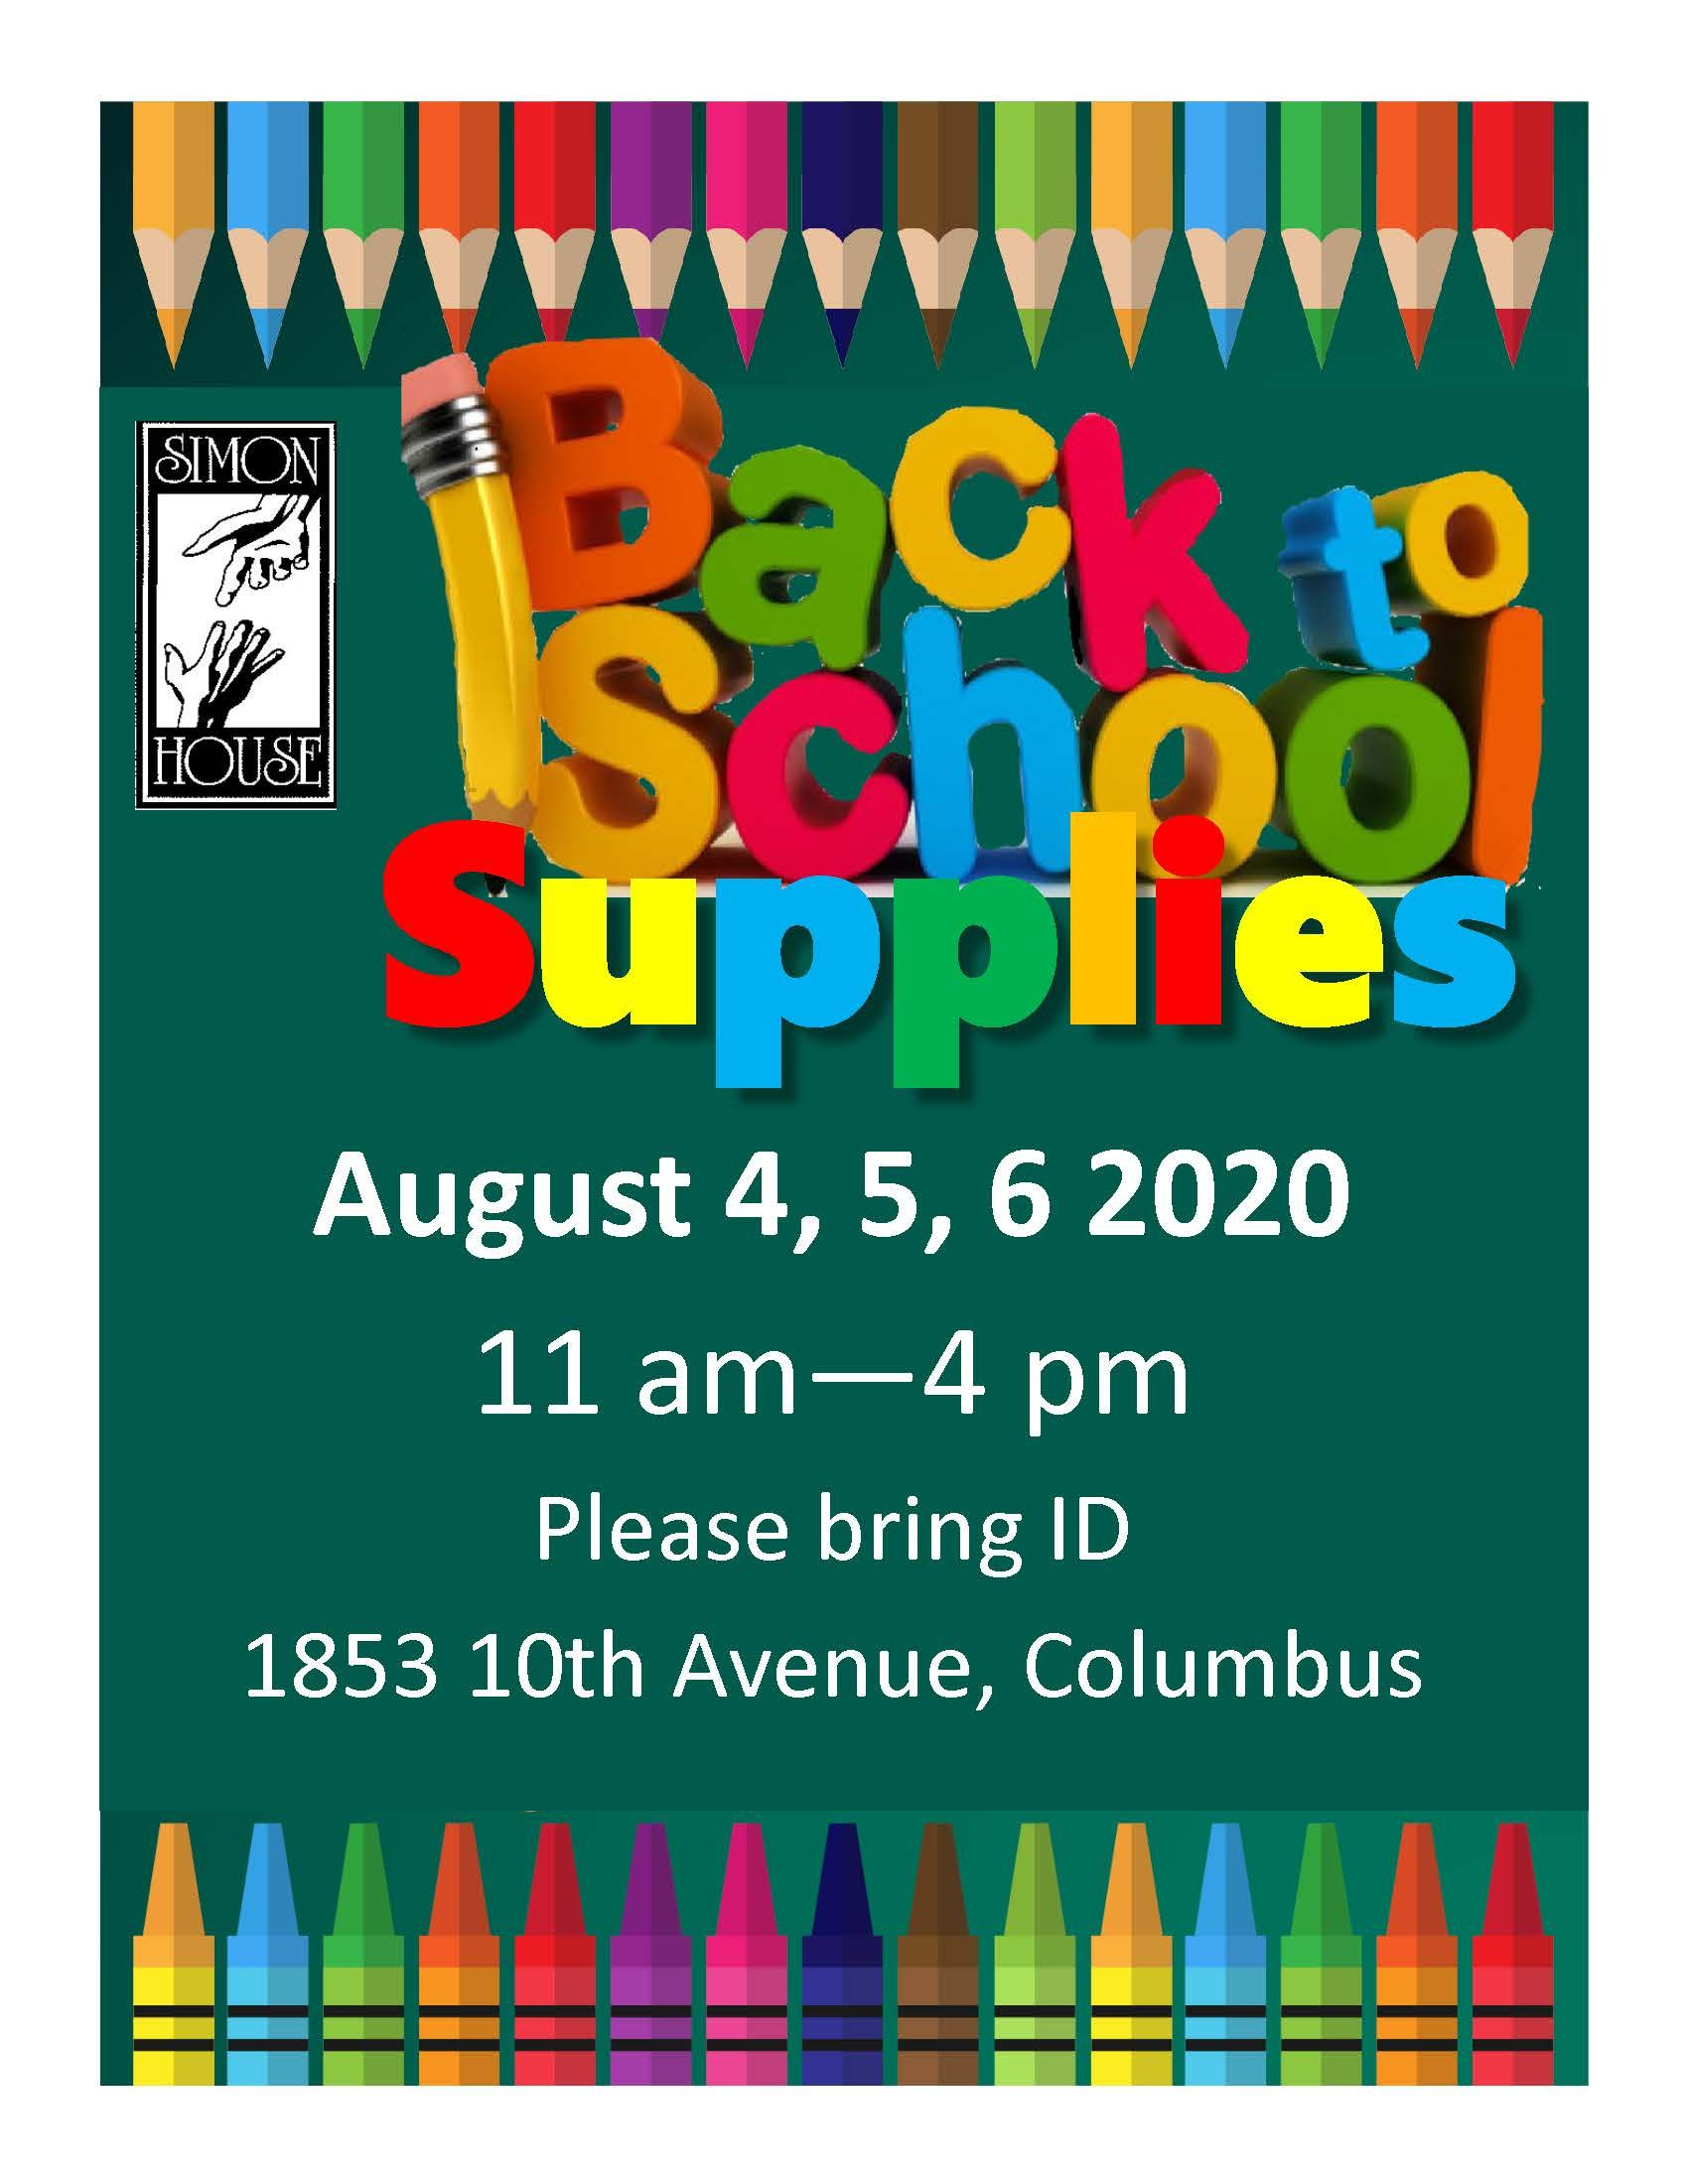 Back to School Supplies at Simon House